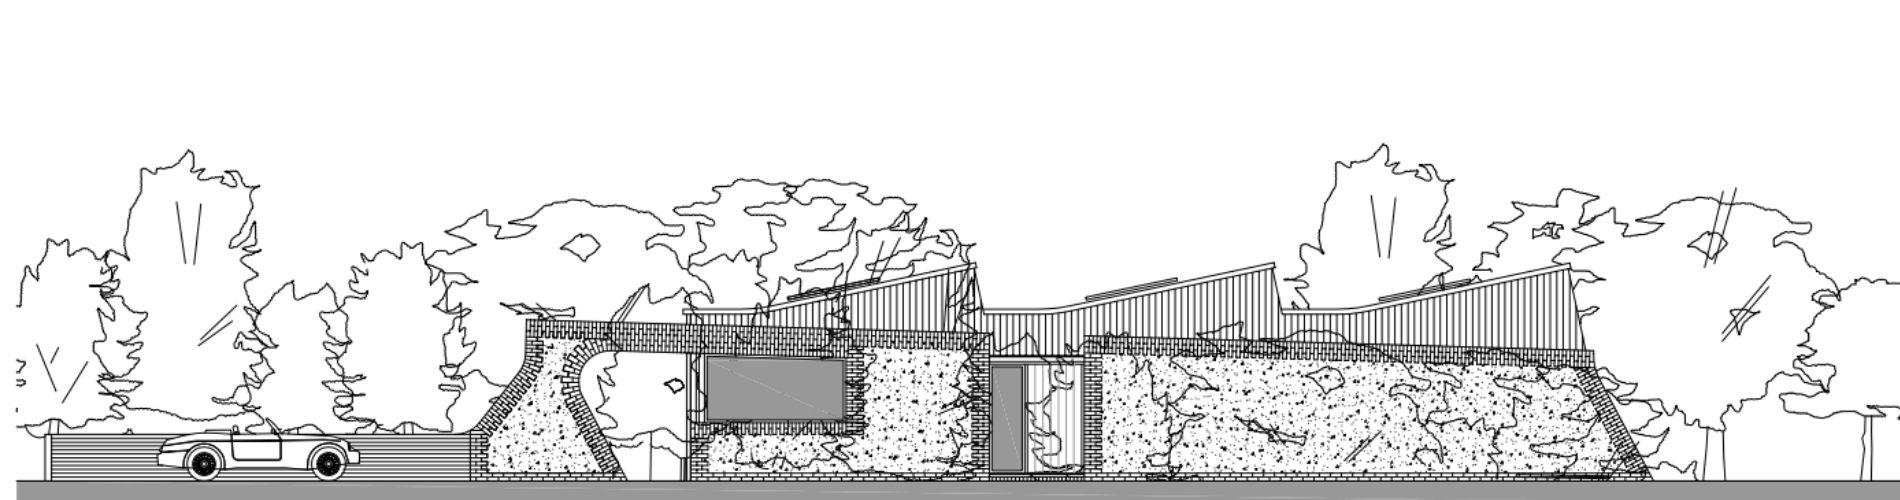 project zero emissions home sketch